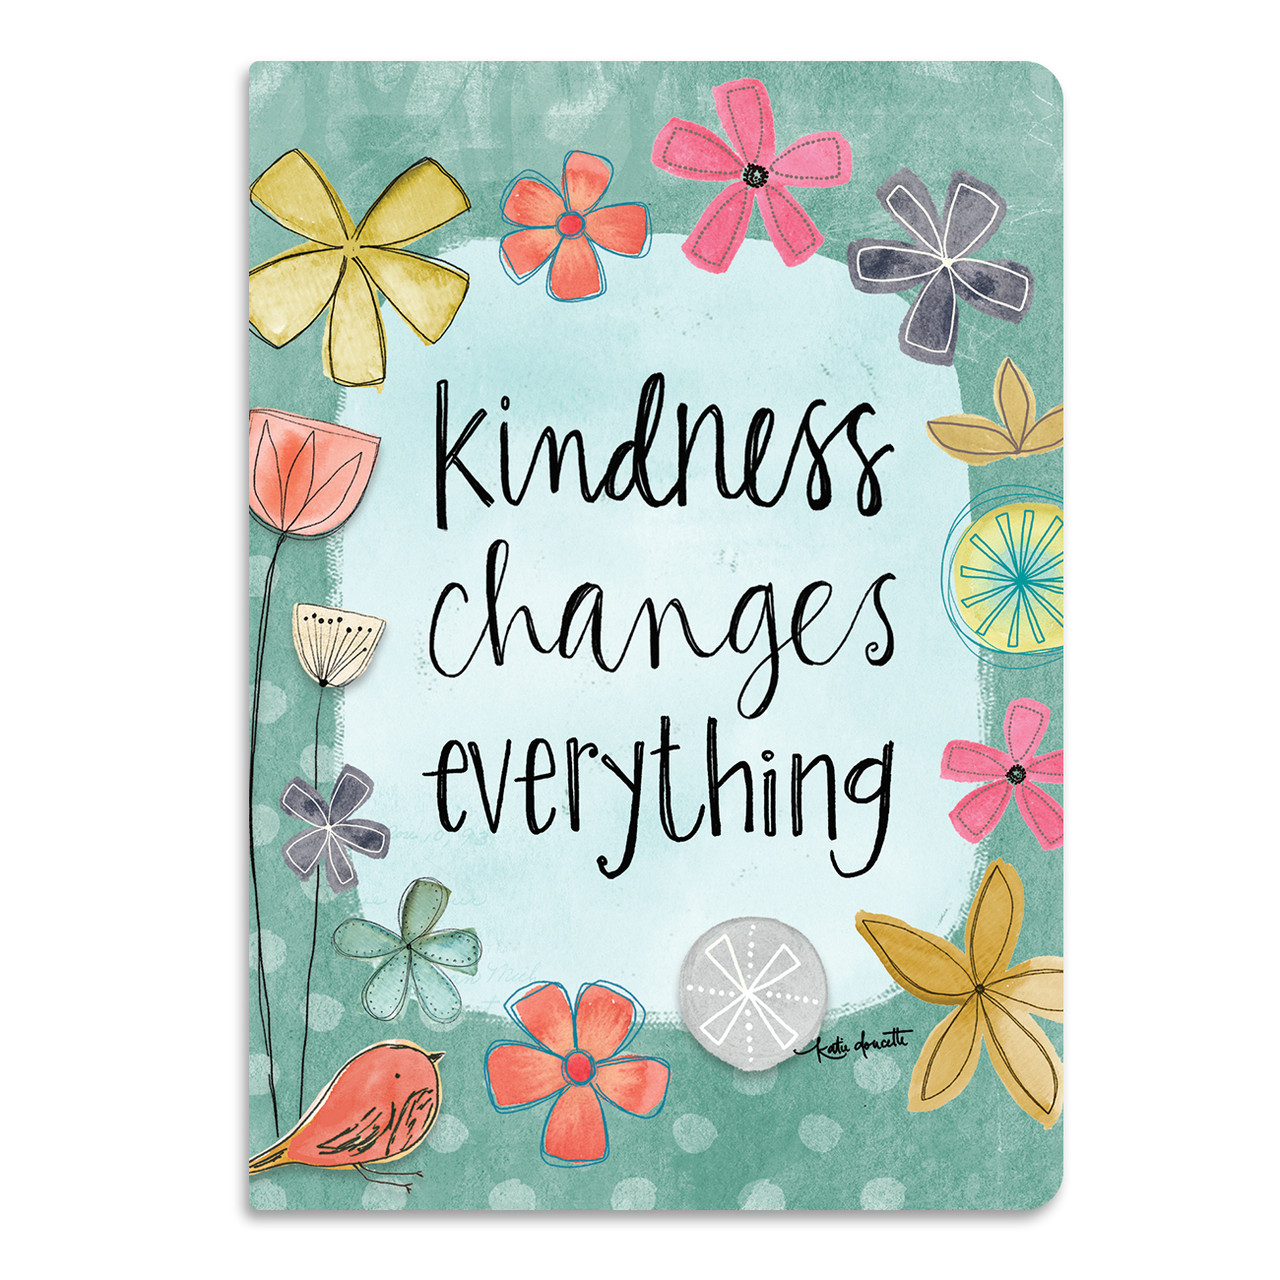 kindness changes everything softcover journal brownlow gifts